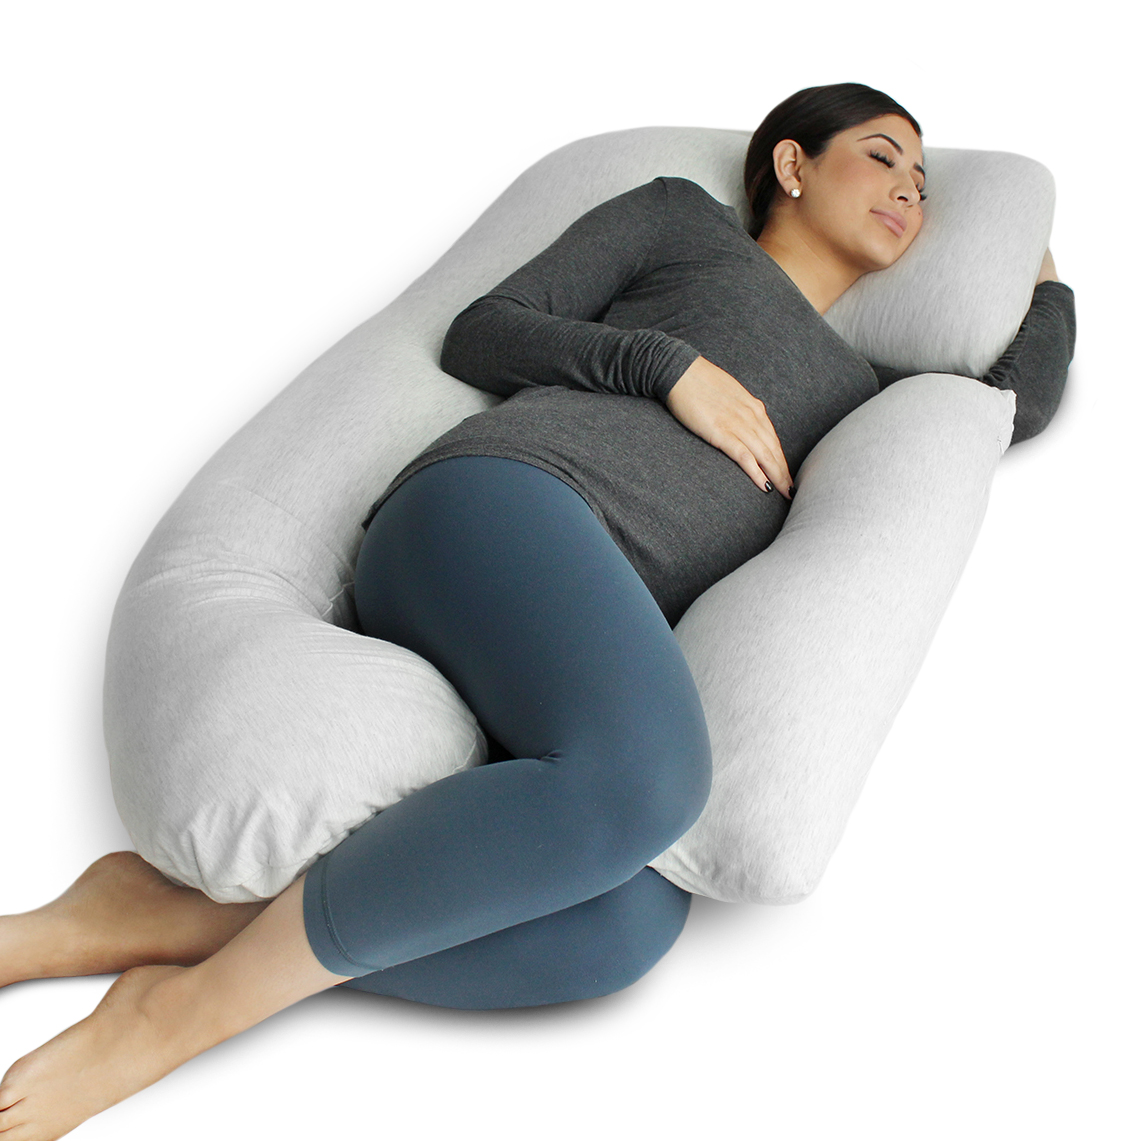 pregnancy pillow full body maternity pillow with contoured u shape by bluestone back support lavish home white 60 x 38 x 7